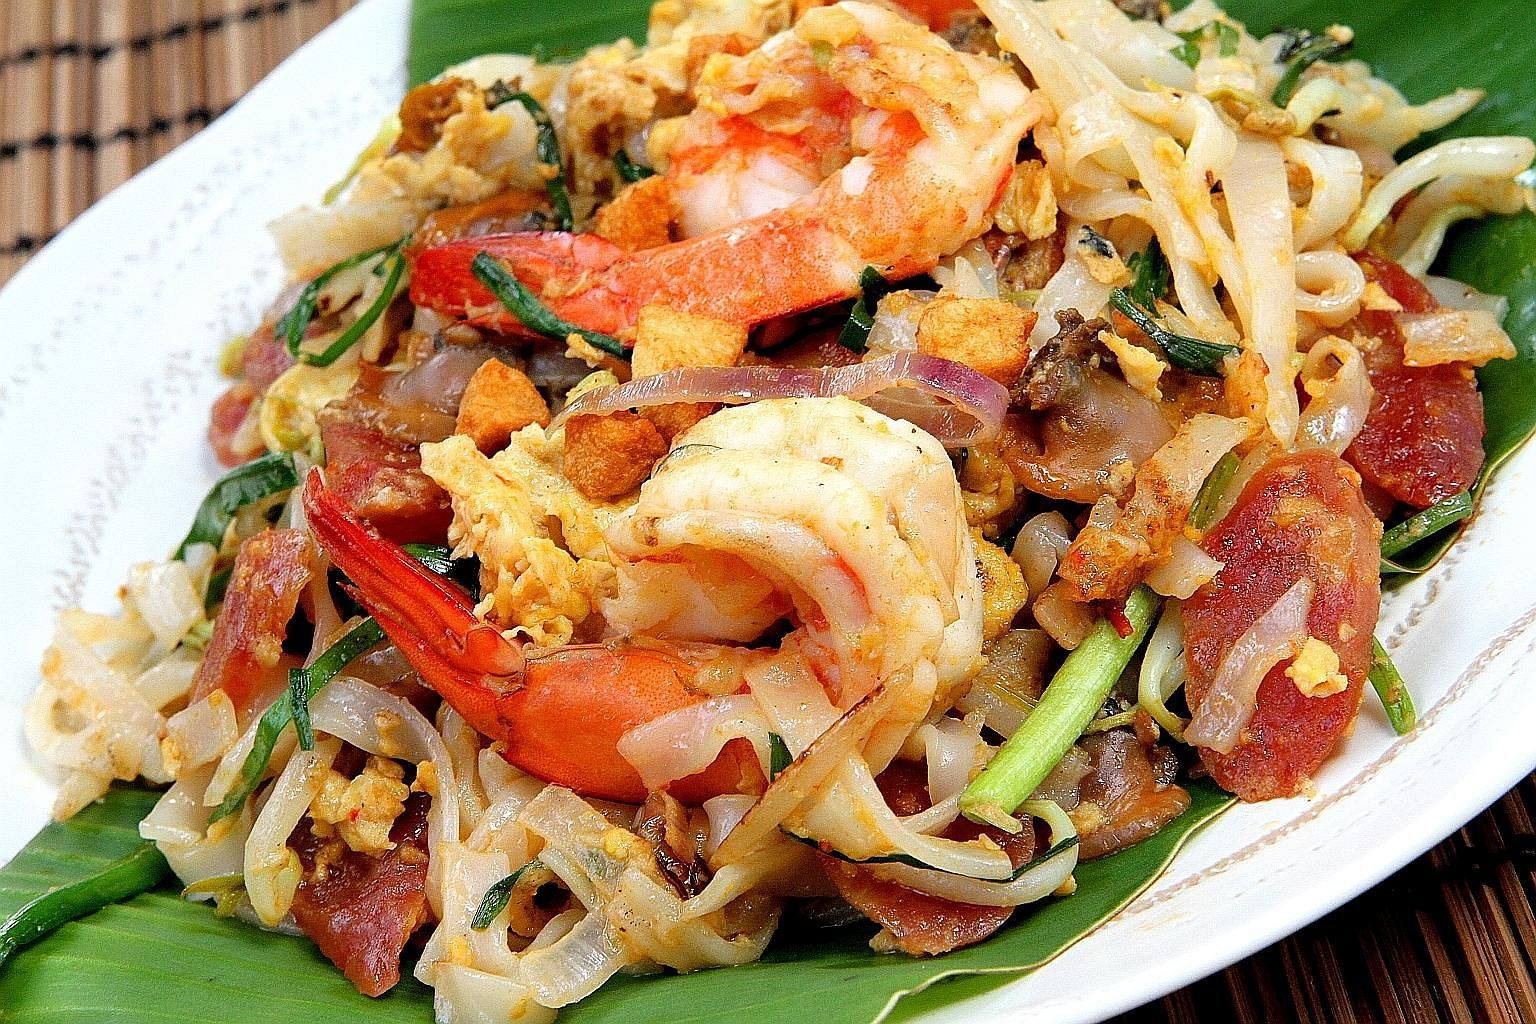 Recreate the yolkiness of Penang char kway teow by using extra-large eggs and adding an extra yolk.